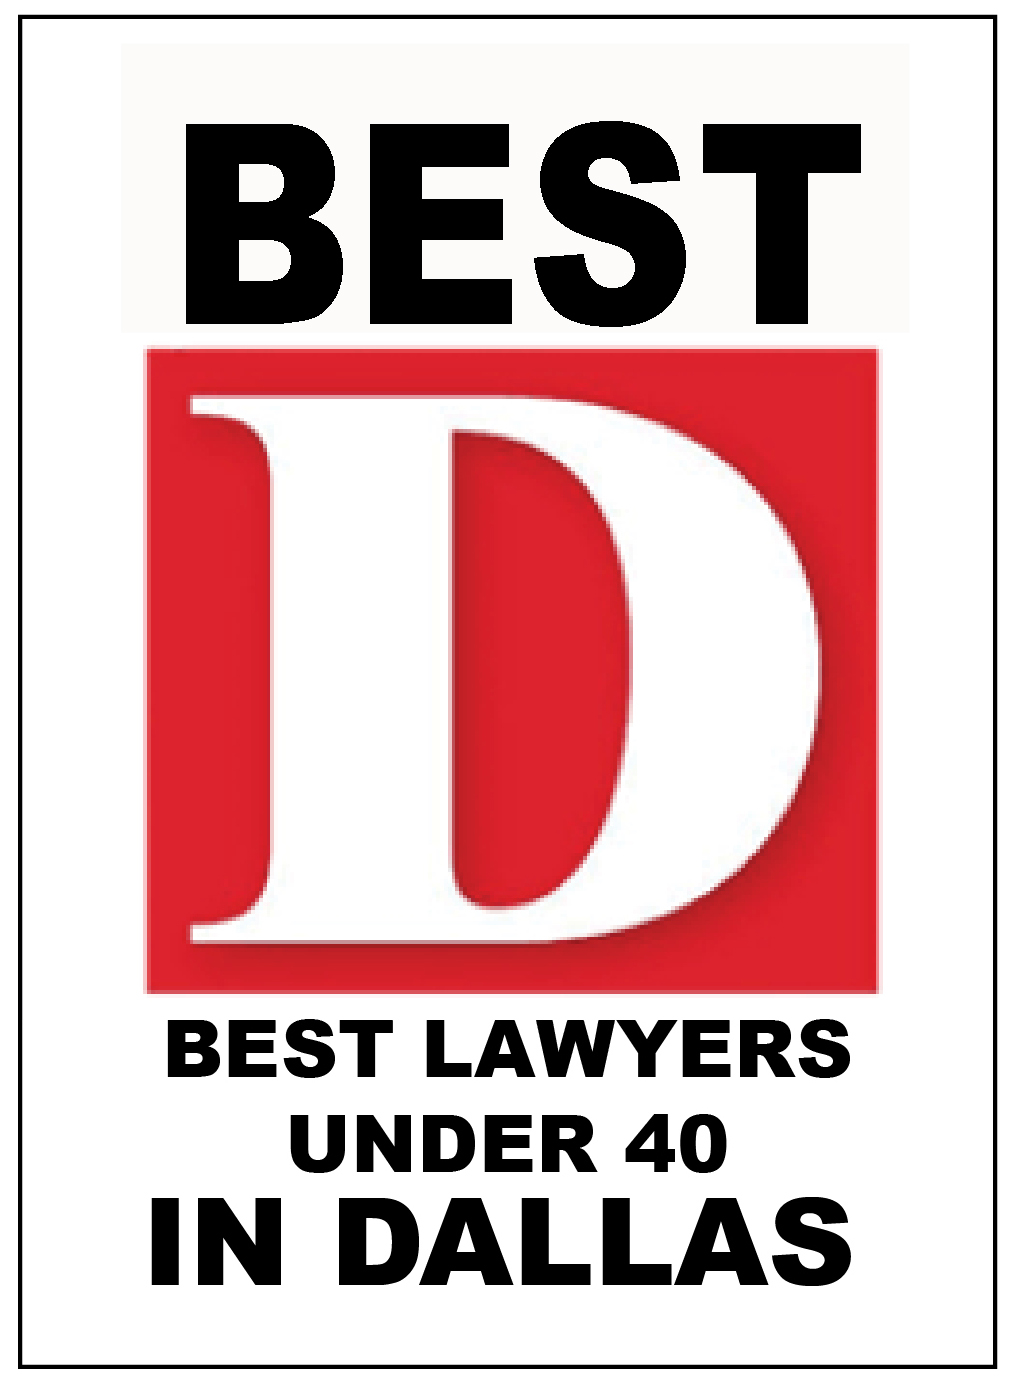 Best D Best Lawyers under 40 in dallas